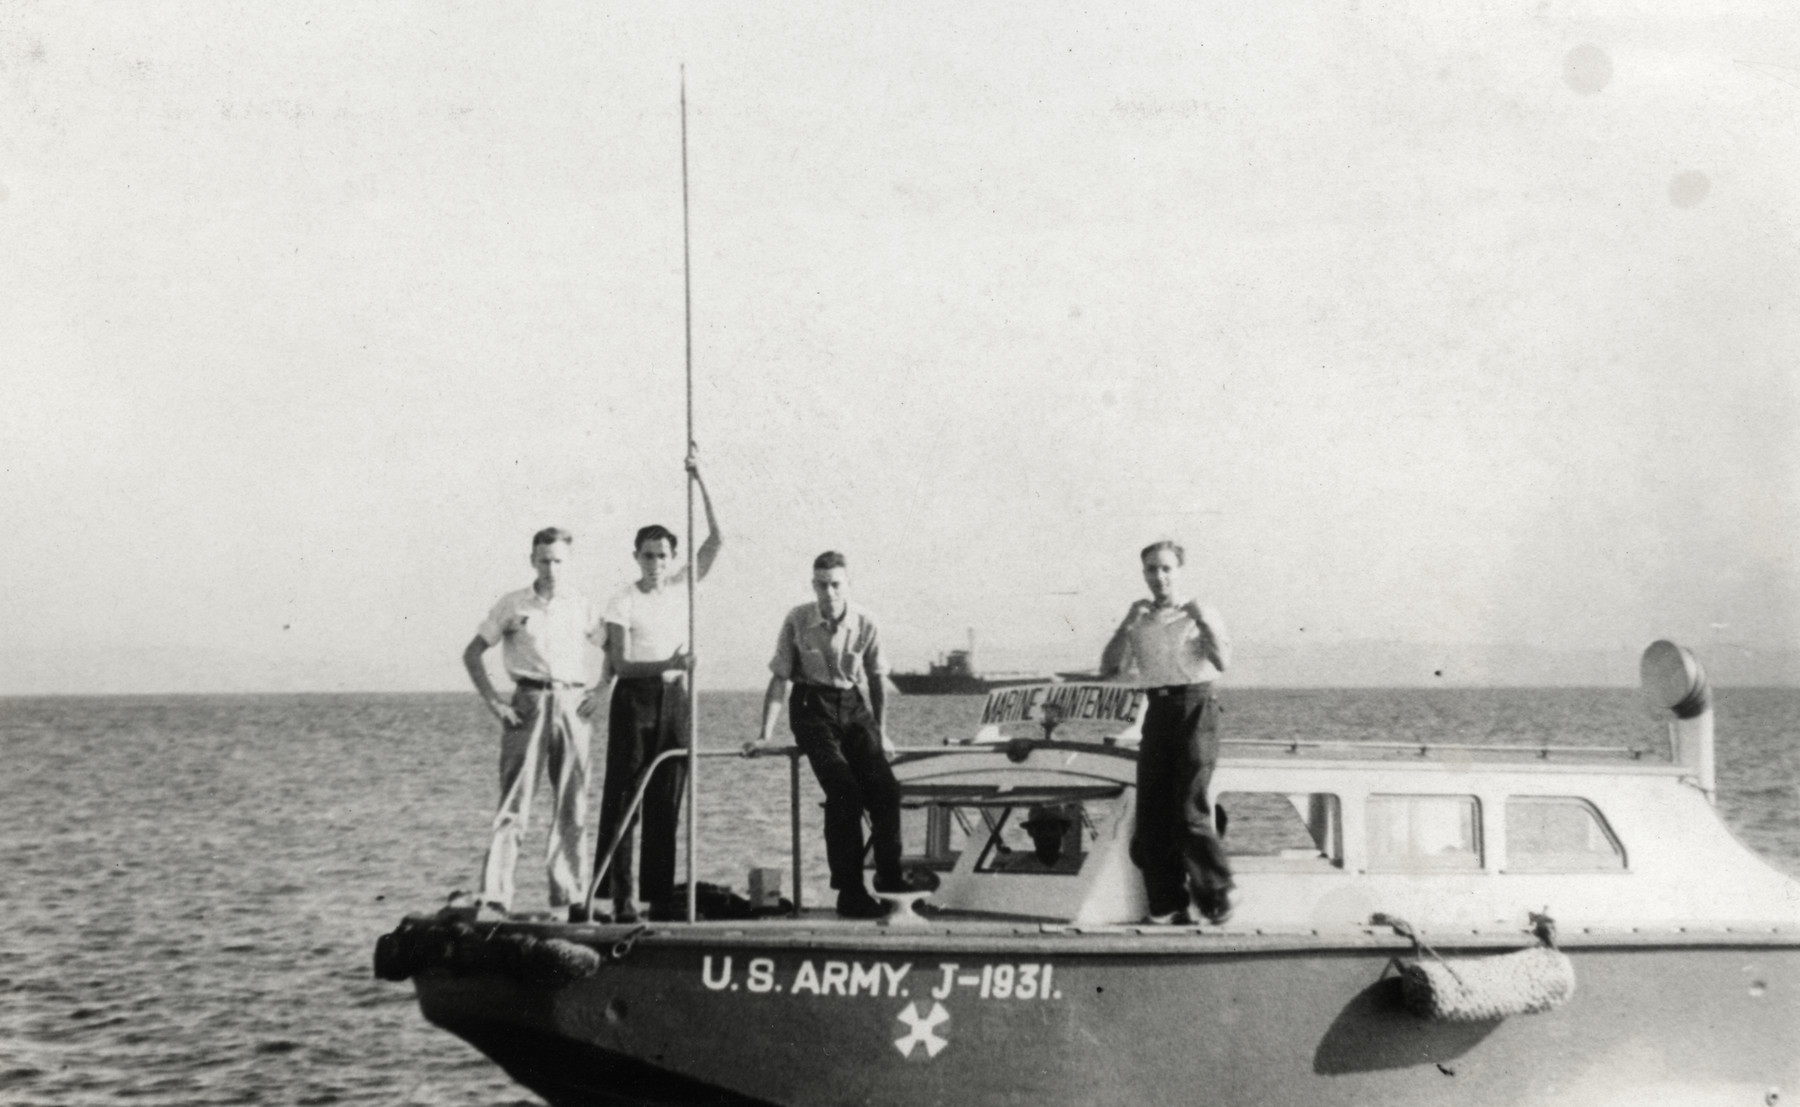 Kurt Markus poses with his friends Slutzky, Julian Burt, and Eddie Alcock on a boat while working for the American navy.